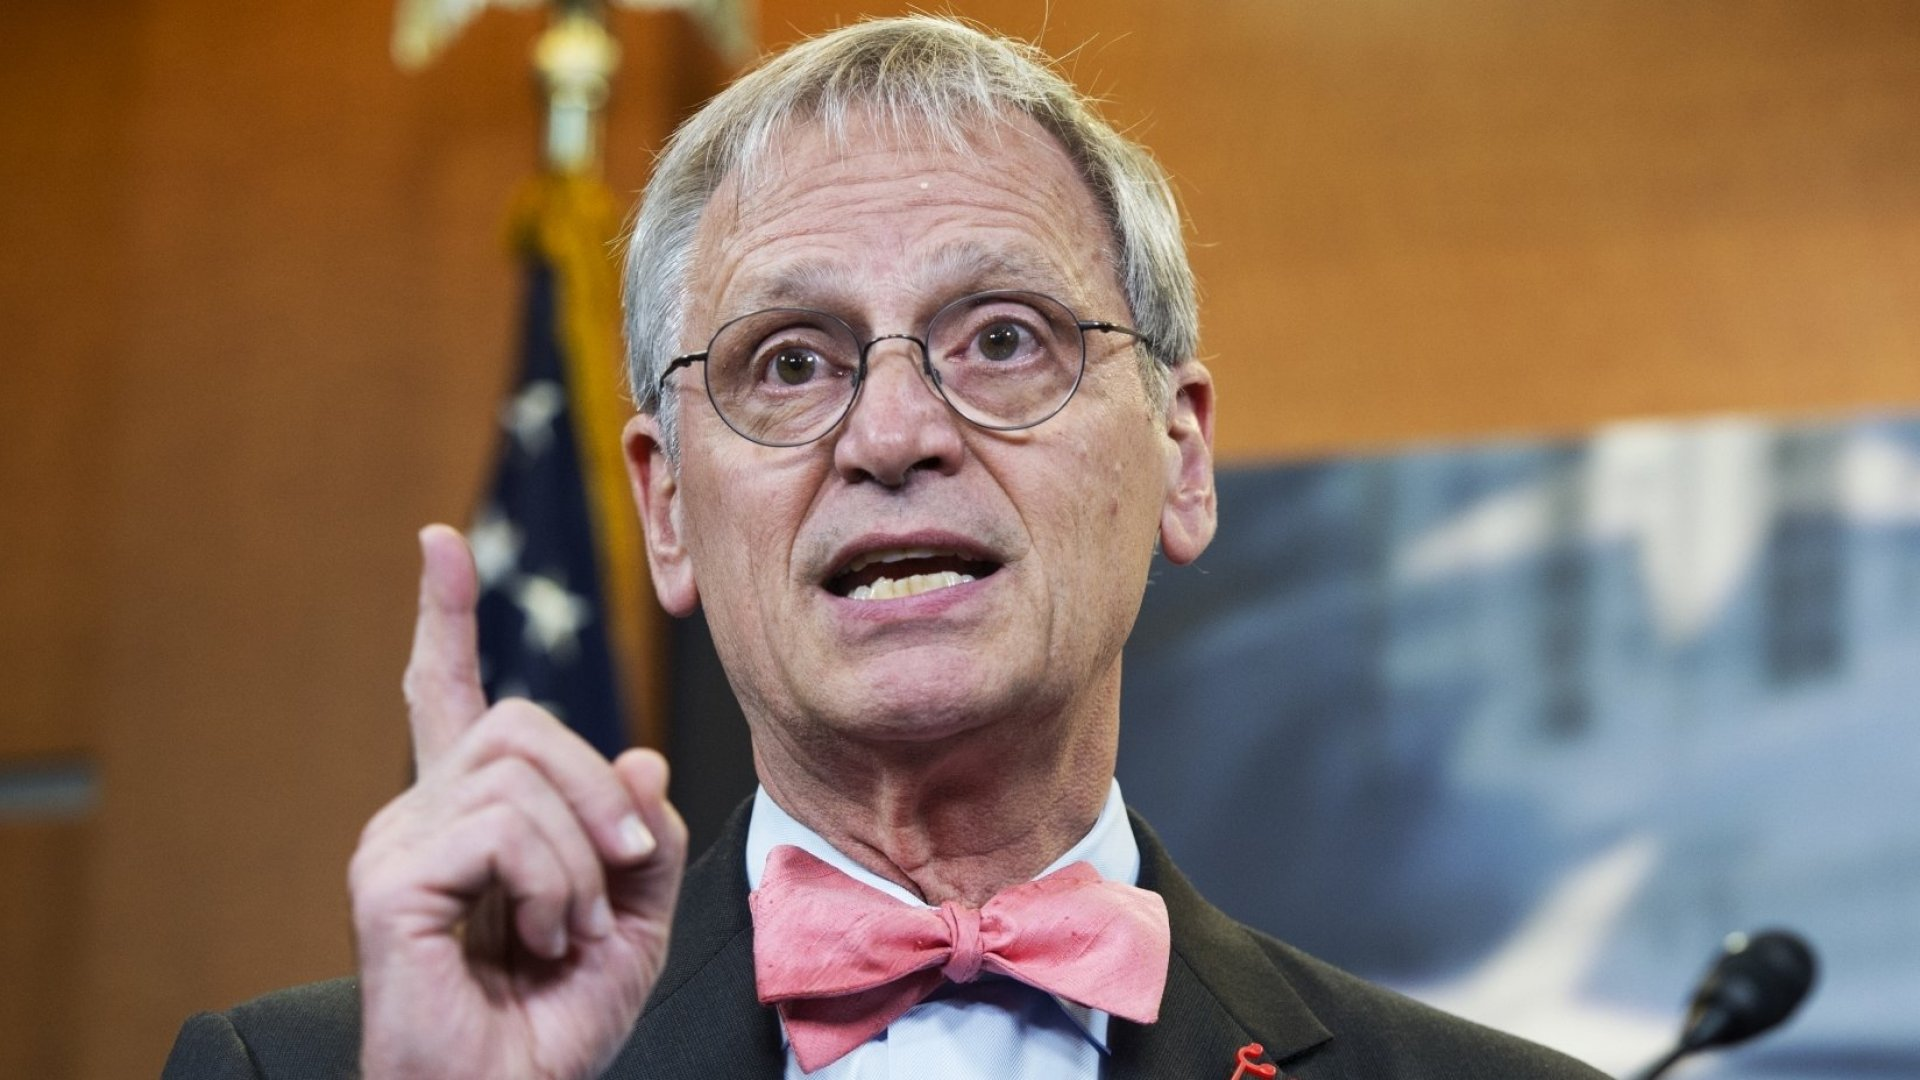 Rep. Earl Blumenauer, D-Oregon, has been fighting for marijuana reform for decades.